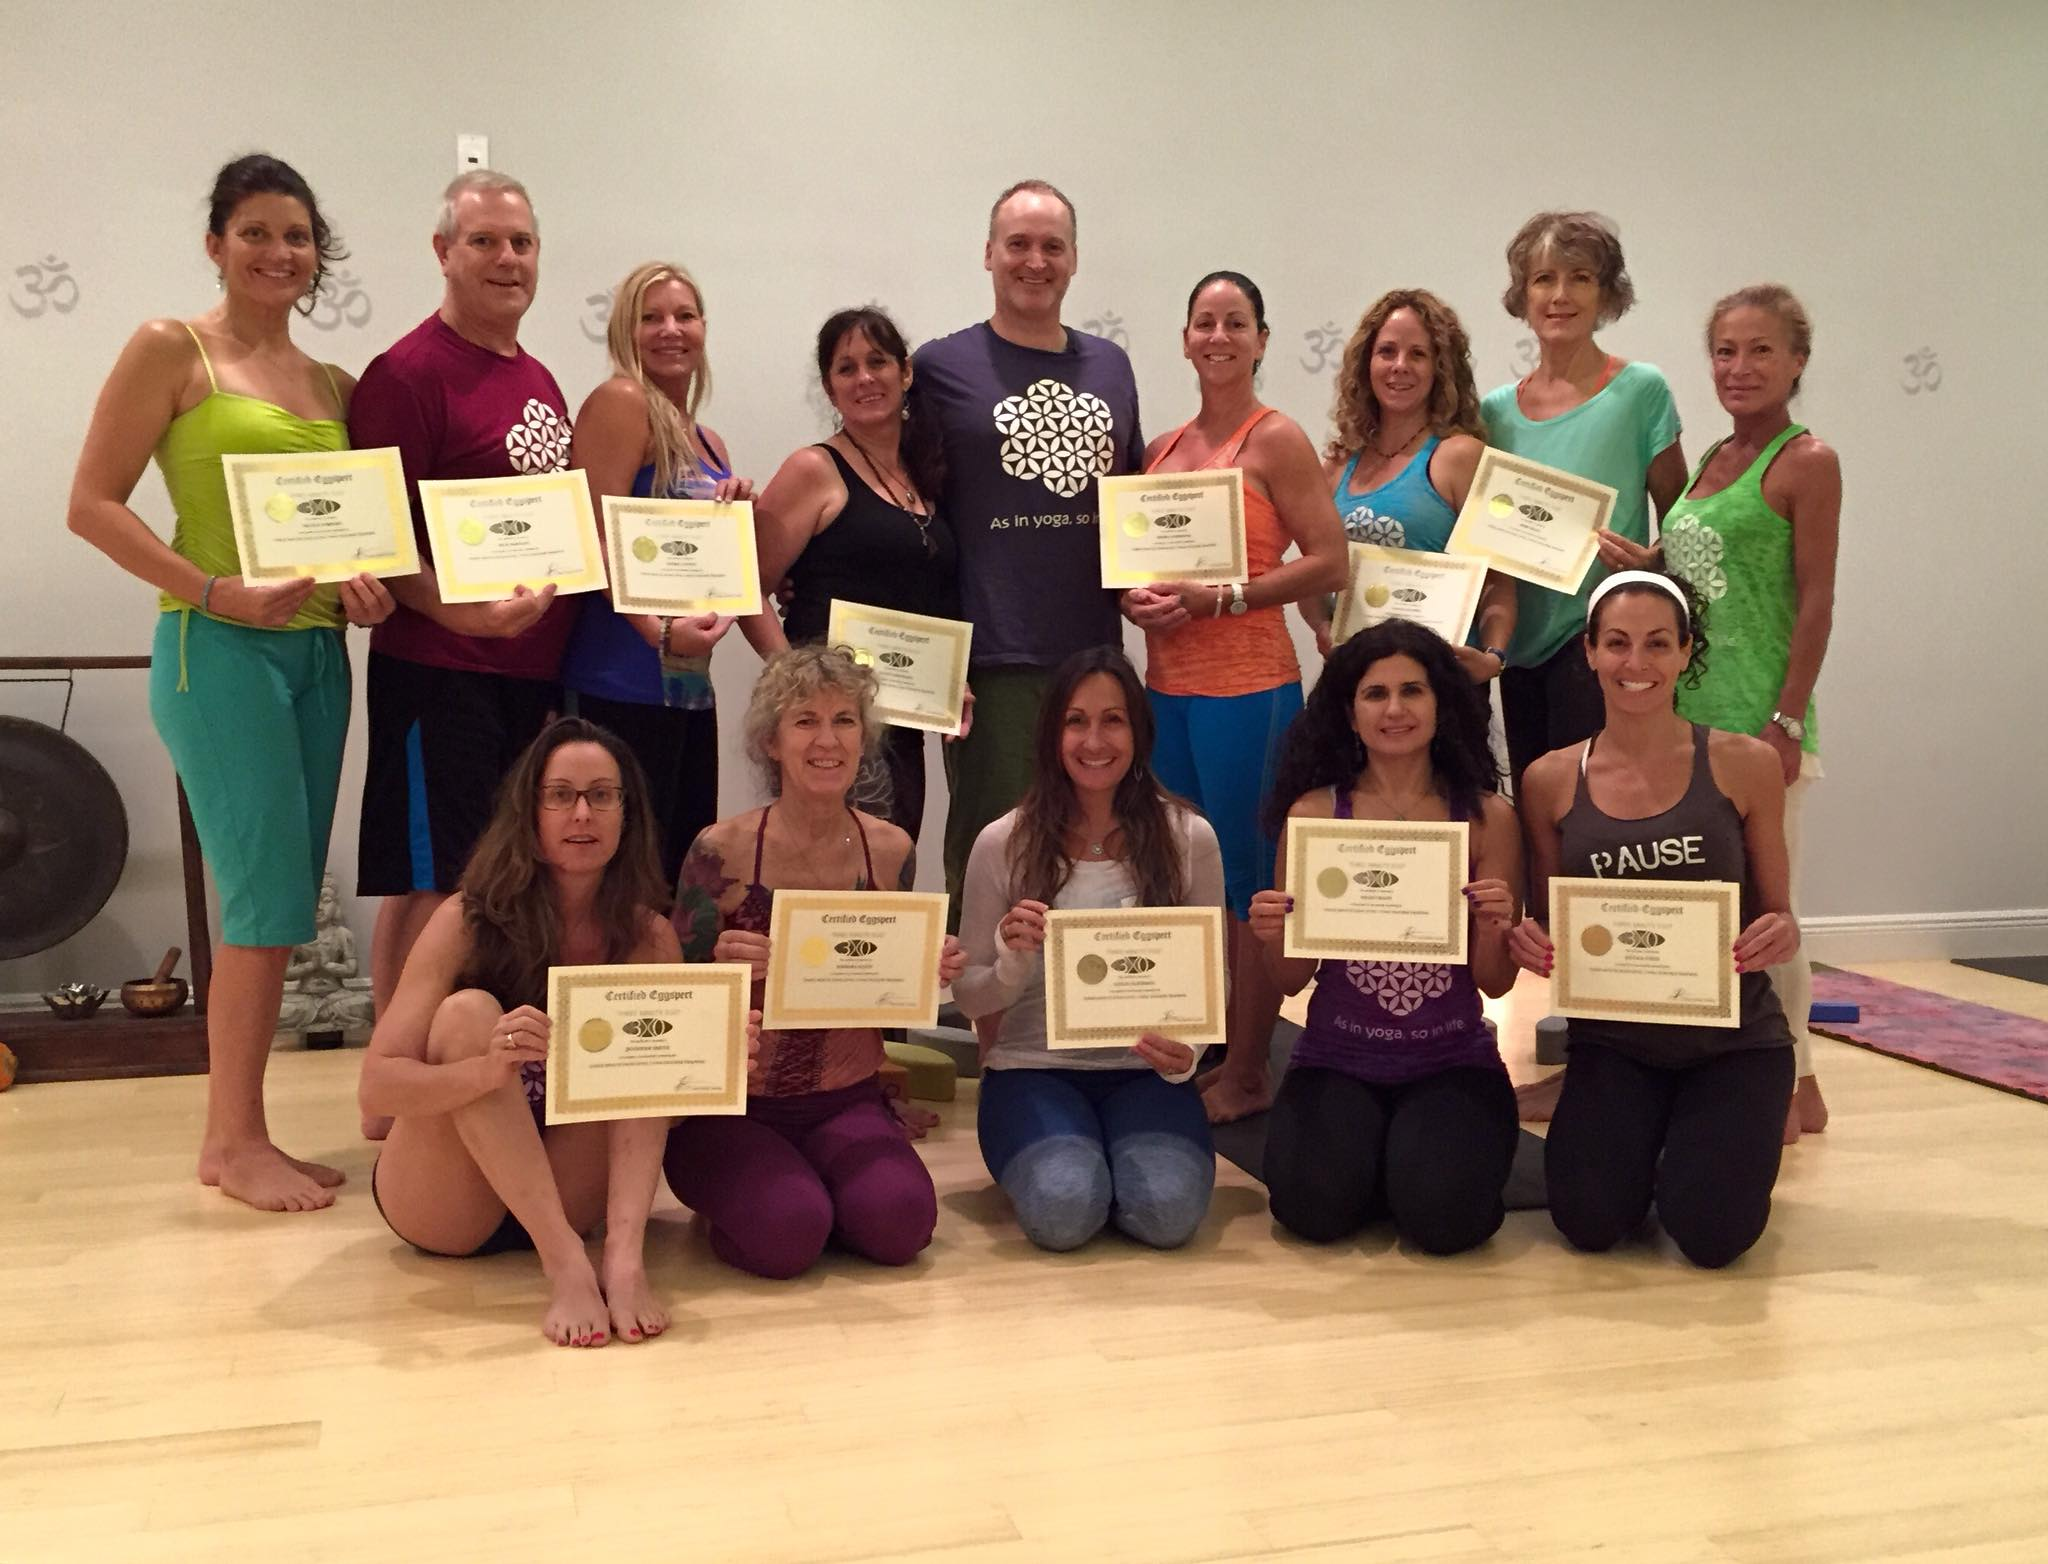 Yoga Teacher Training and Certification Level 1 with Three Minute Egg at Yoga Journey in Boca Raton FL